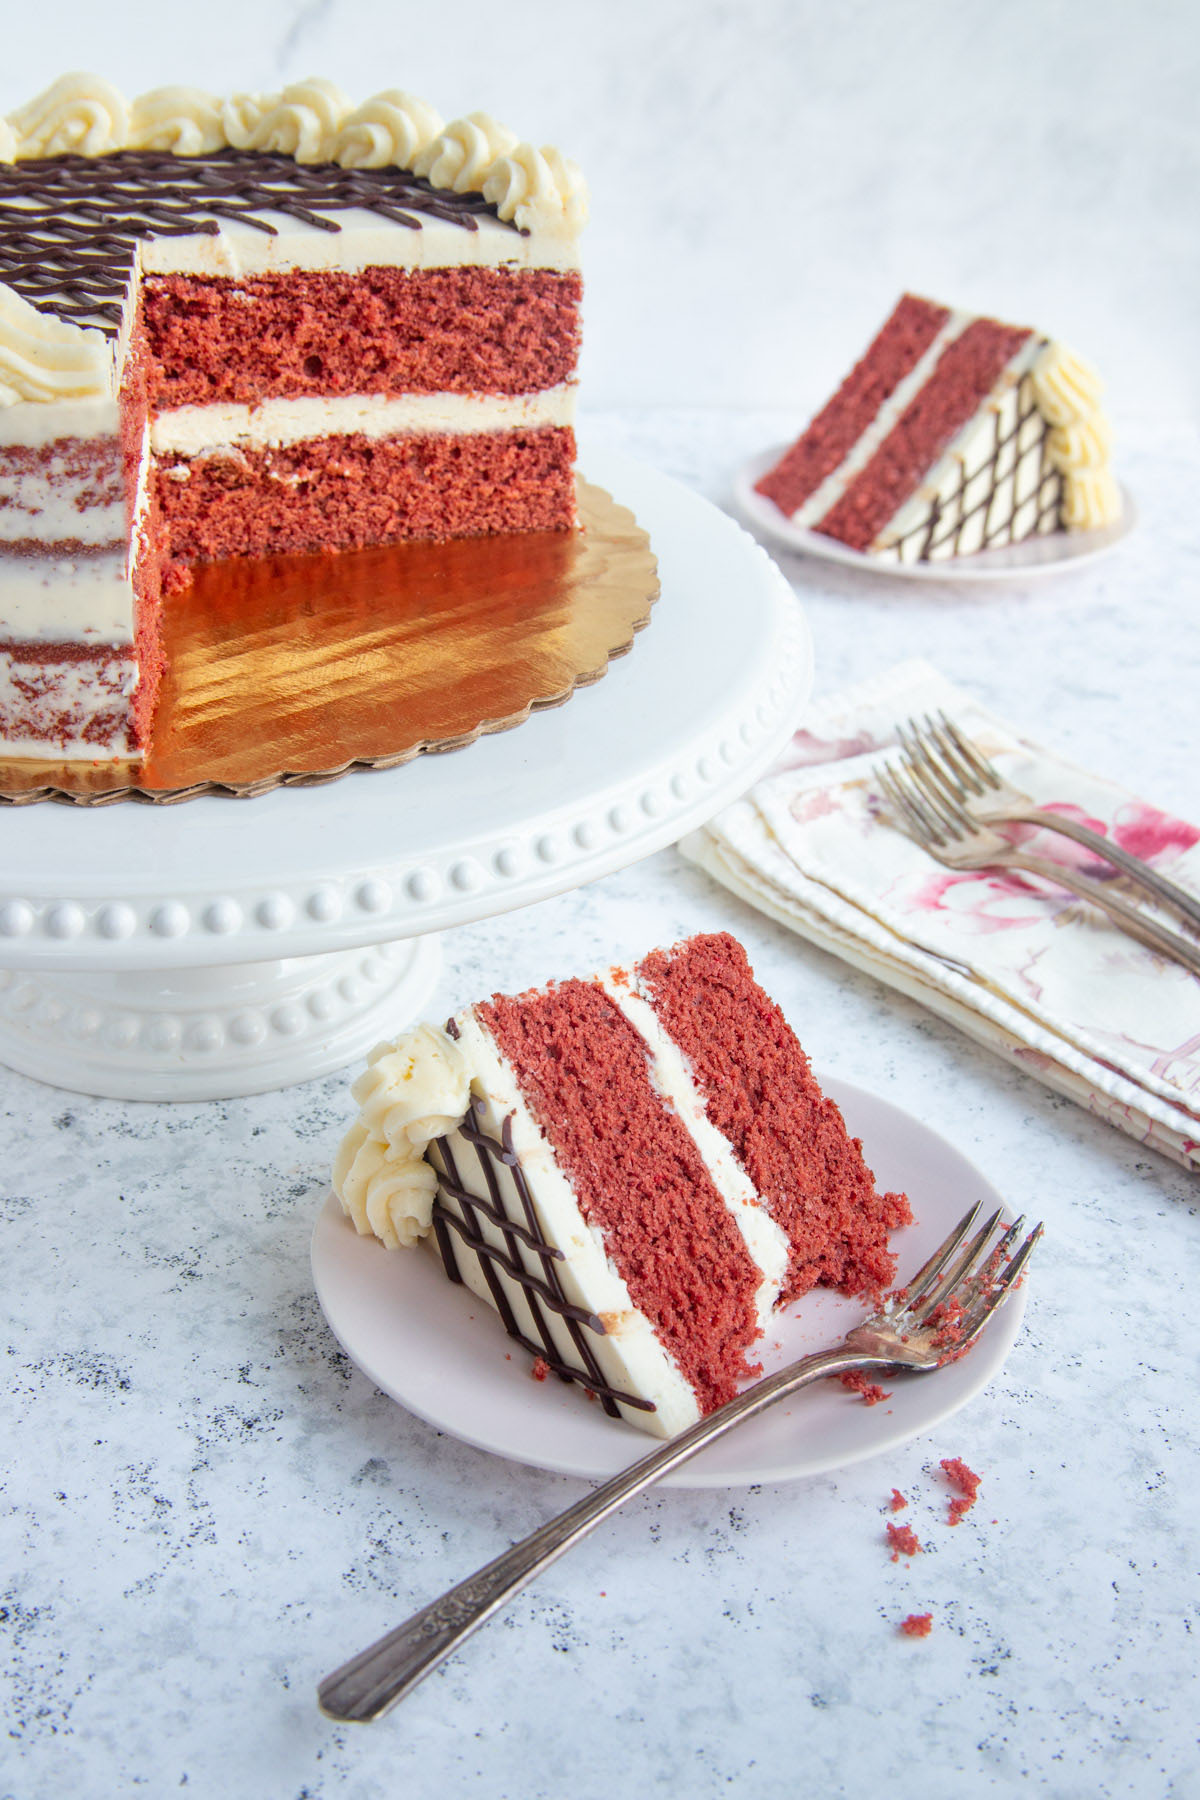 Red Velvet Cake with Mascarpone Buttercream - two slices on two small plates and the main cake on a cake stand